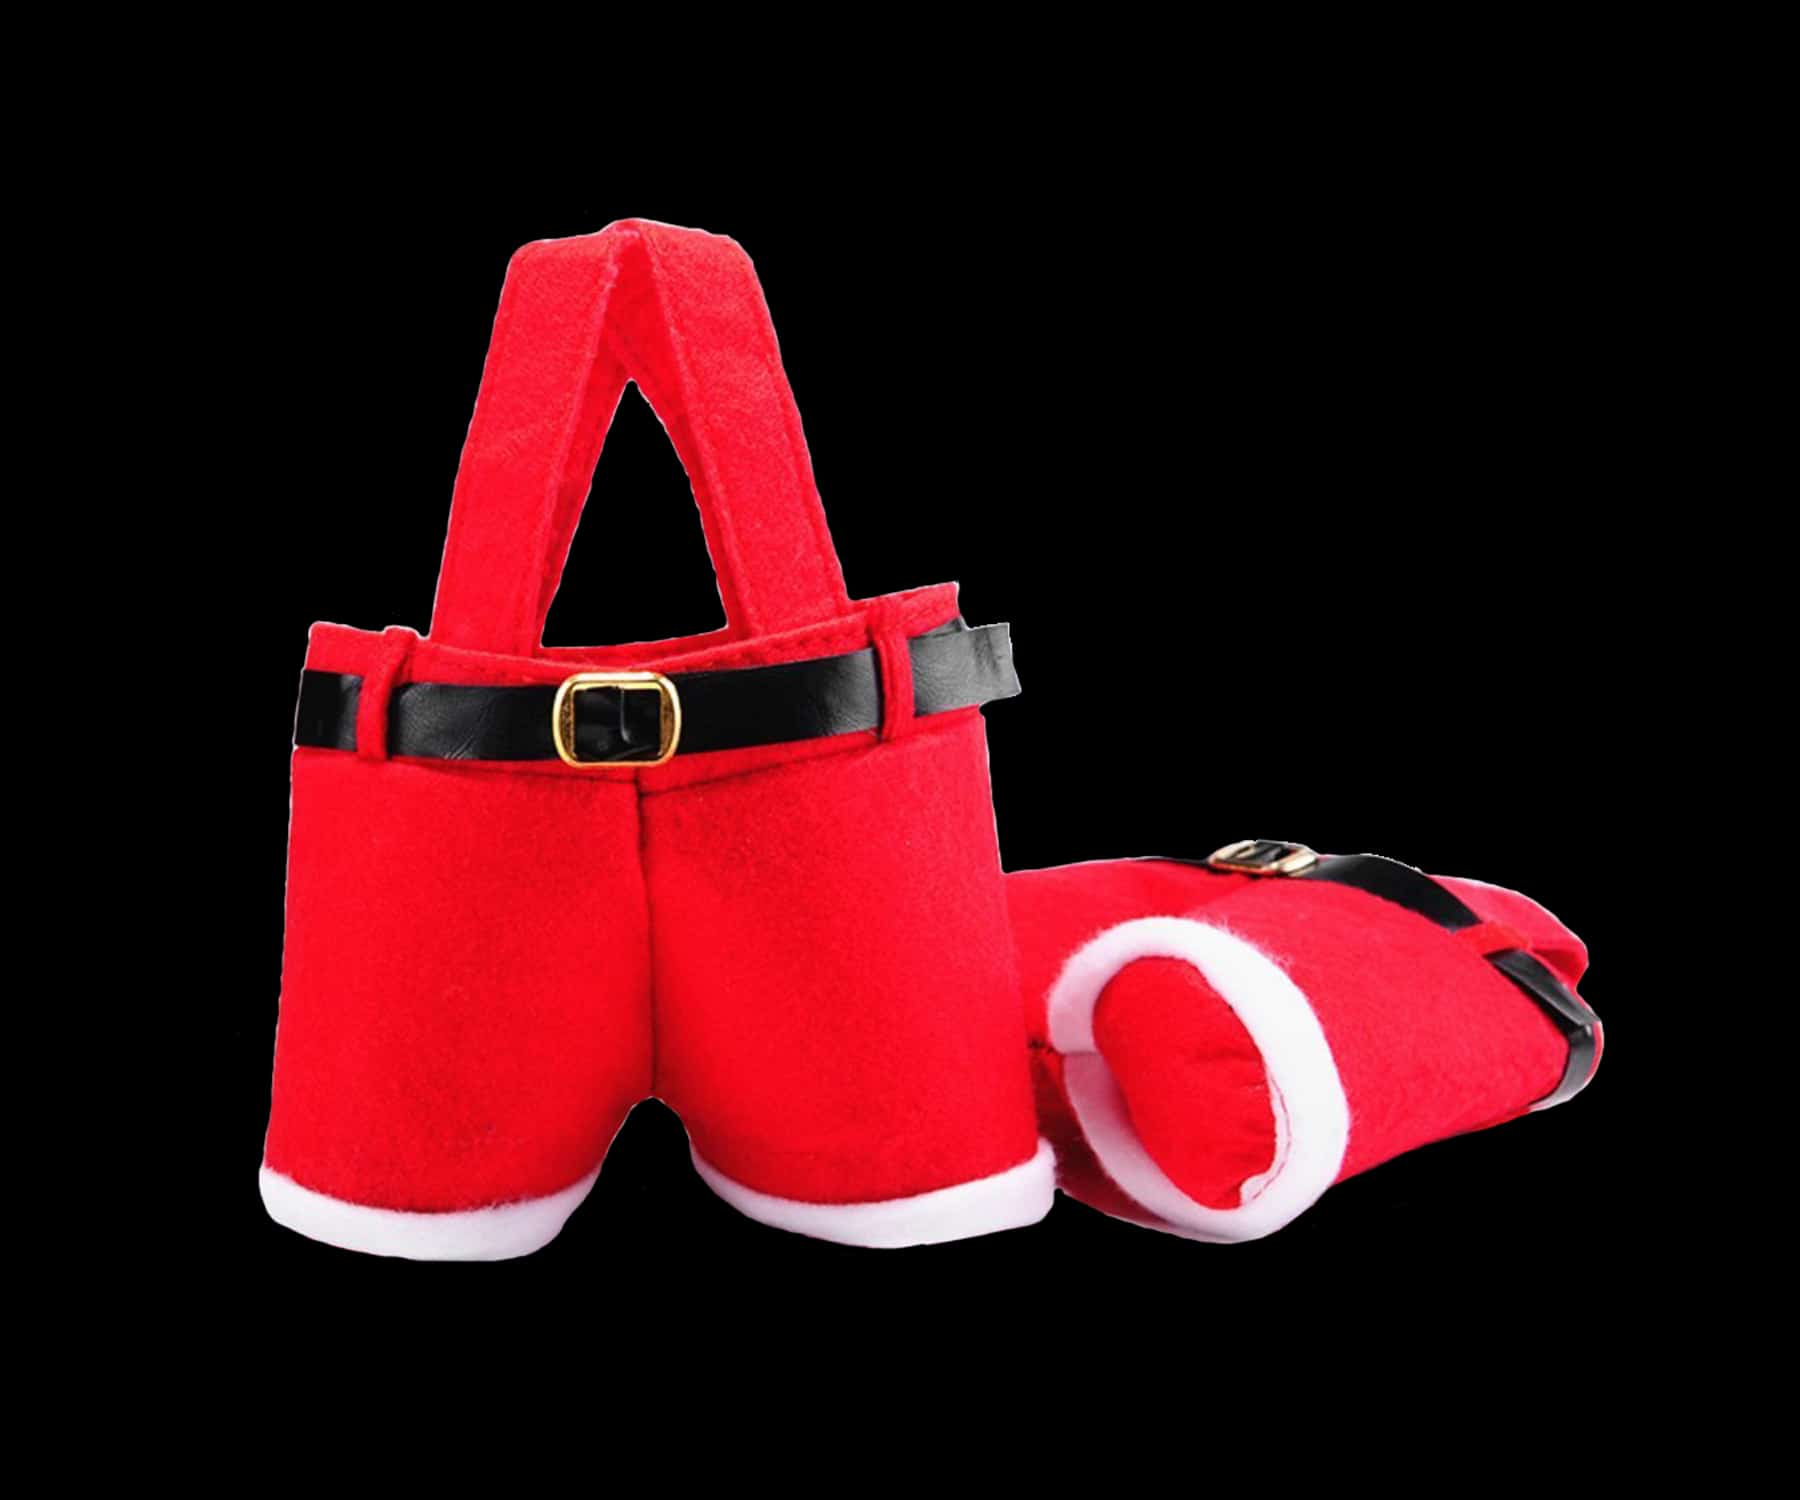 Santa Trousers Bag in red felt with black belt, buckle and fur detail.